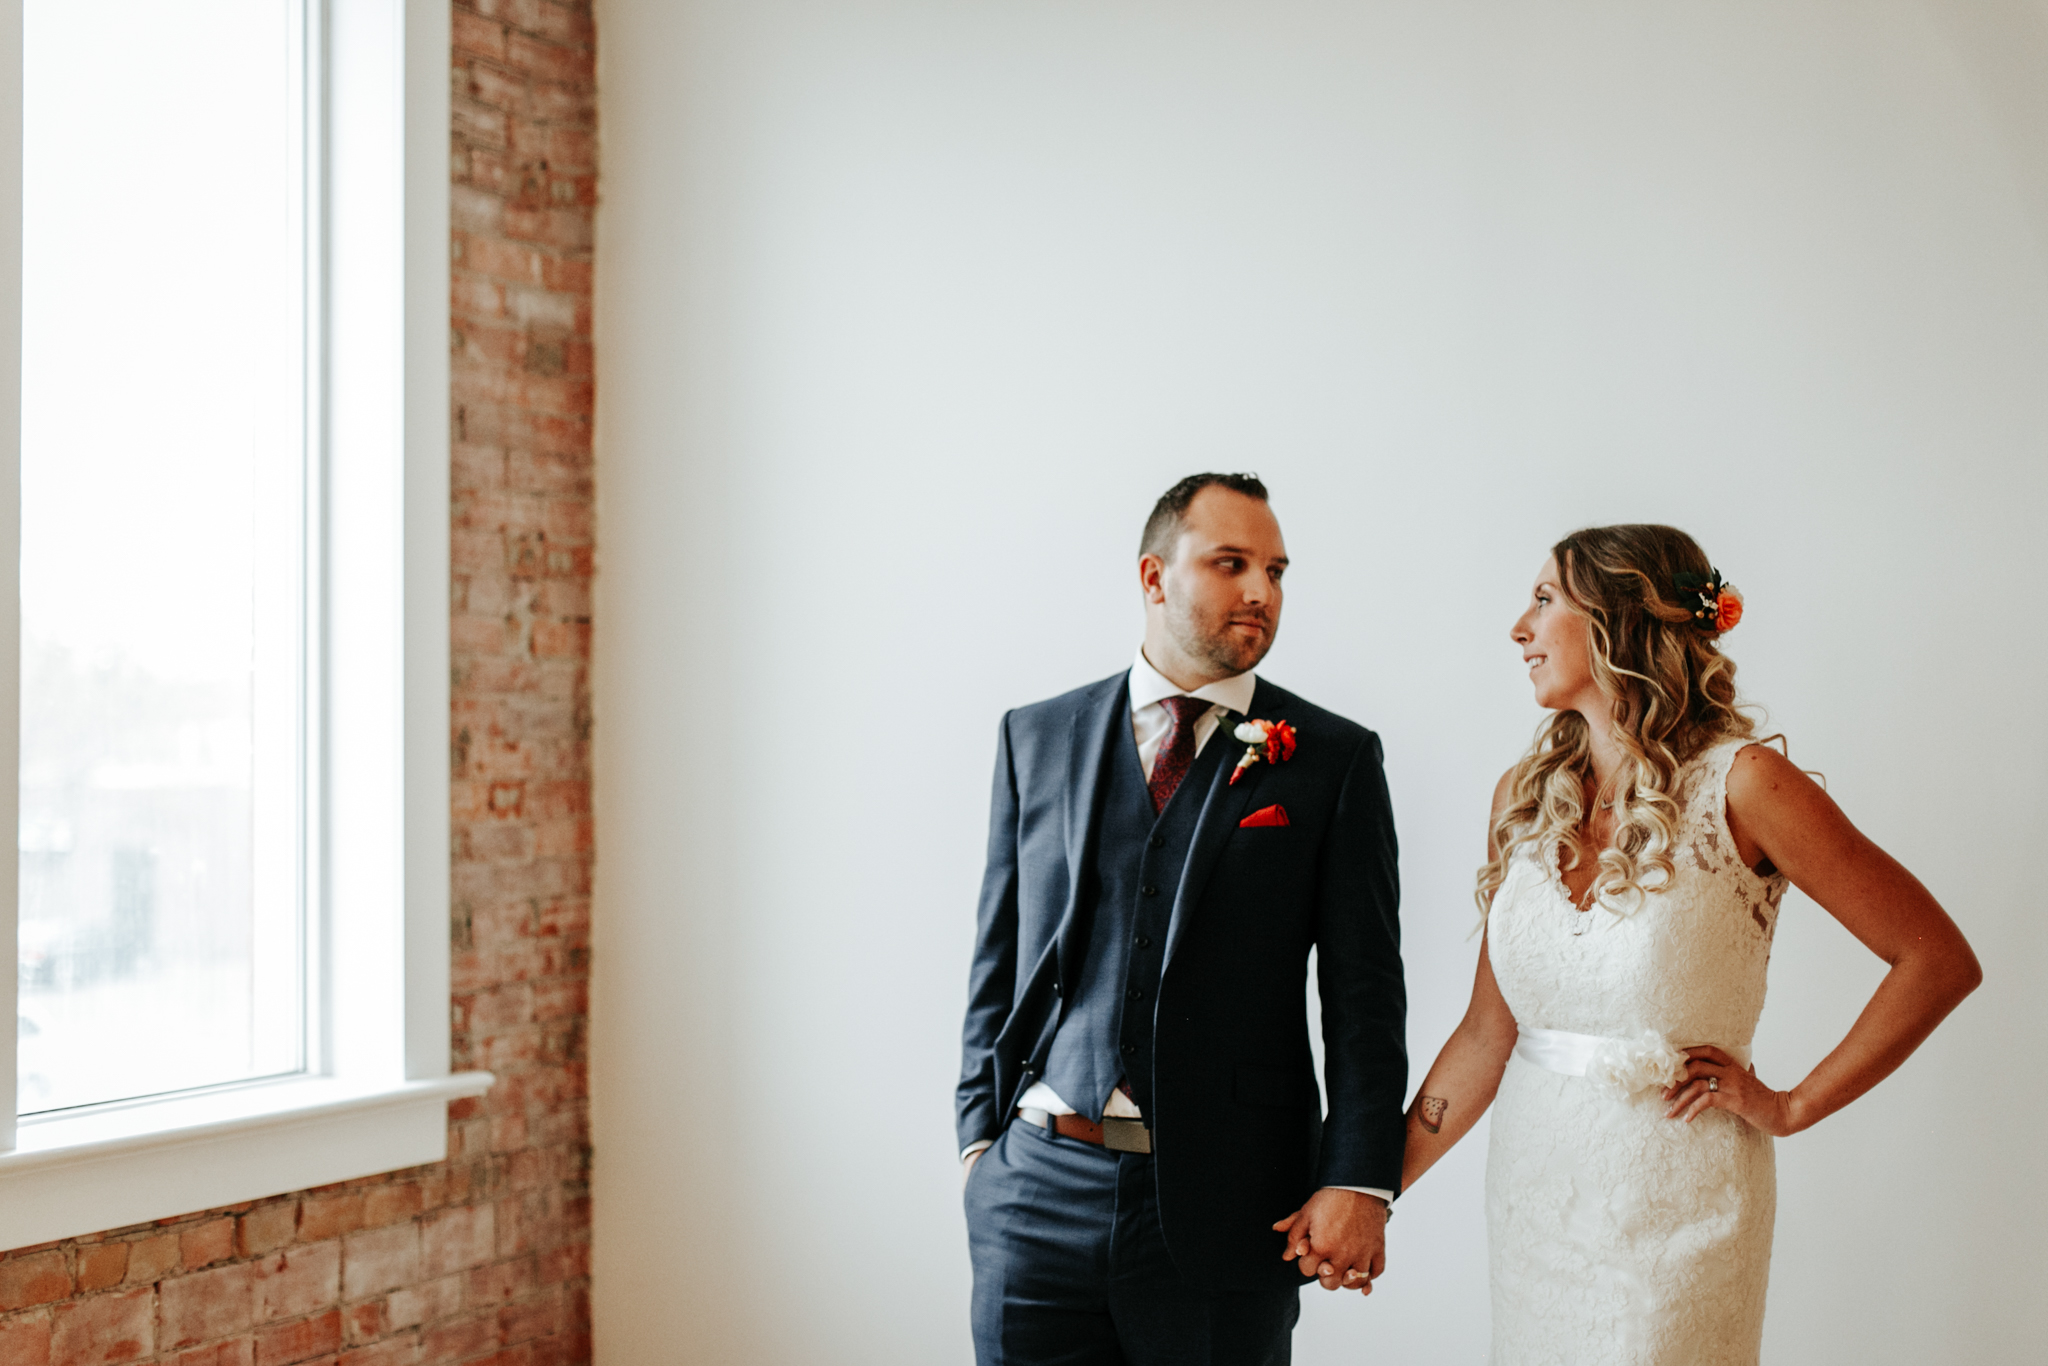 lethbridge-photographer-love-and-be-loved-photography-designed-to-dwell-wedding-katie-kelly-photo-image-picture-15.jpg